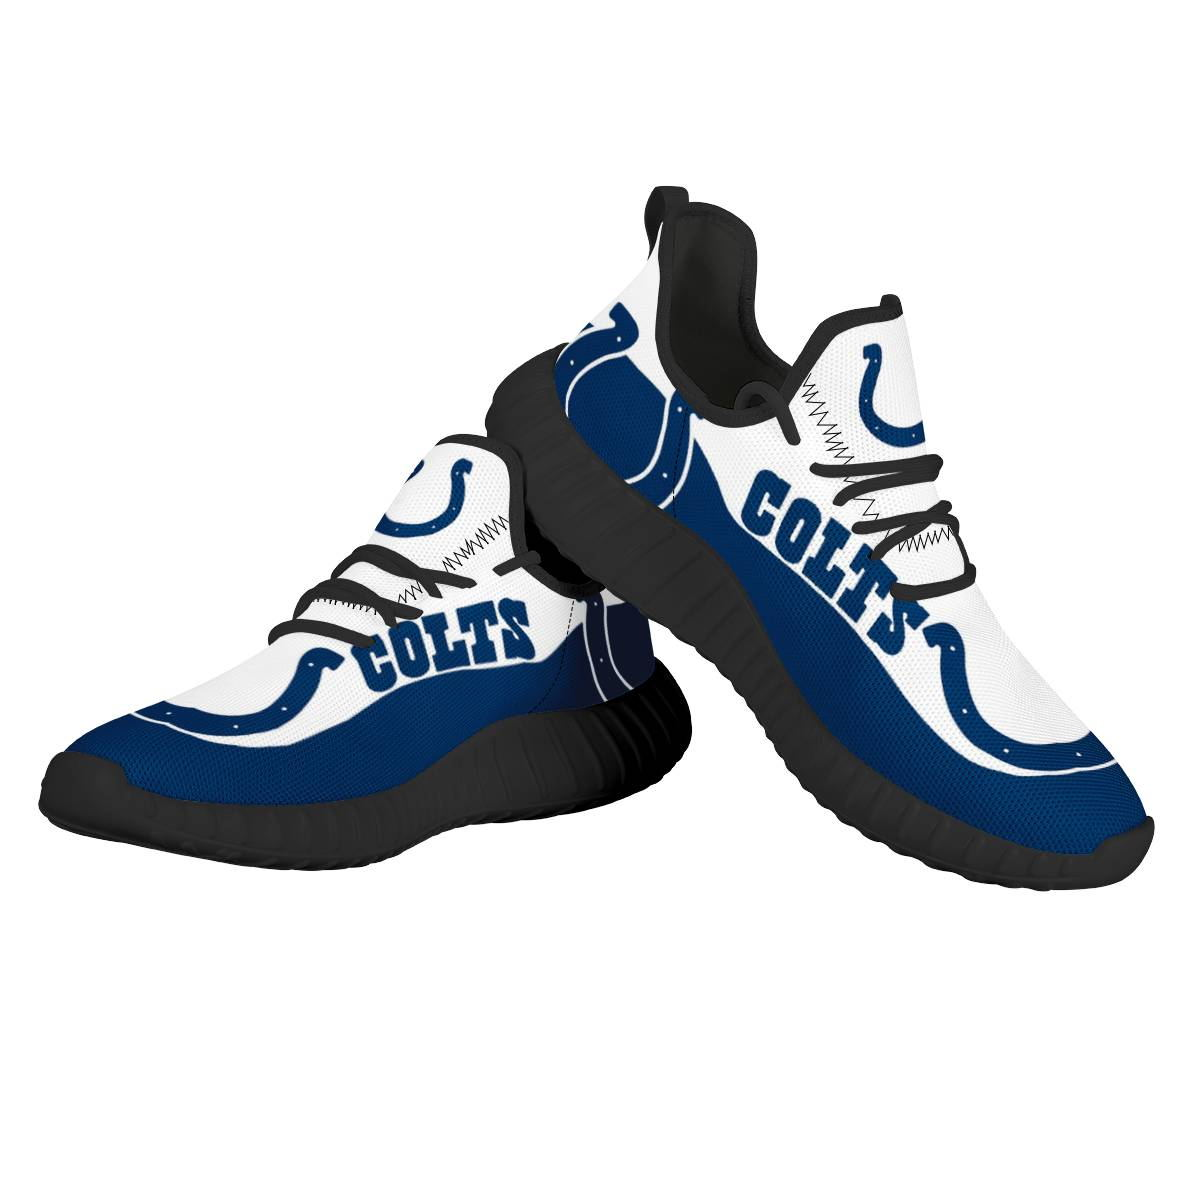 Women's NFL Indianapolis Colts Mesh Knit Sneakers/Shoes 003